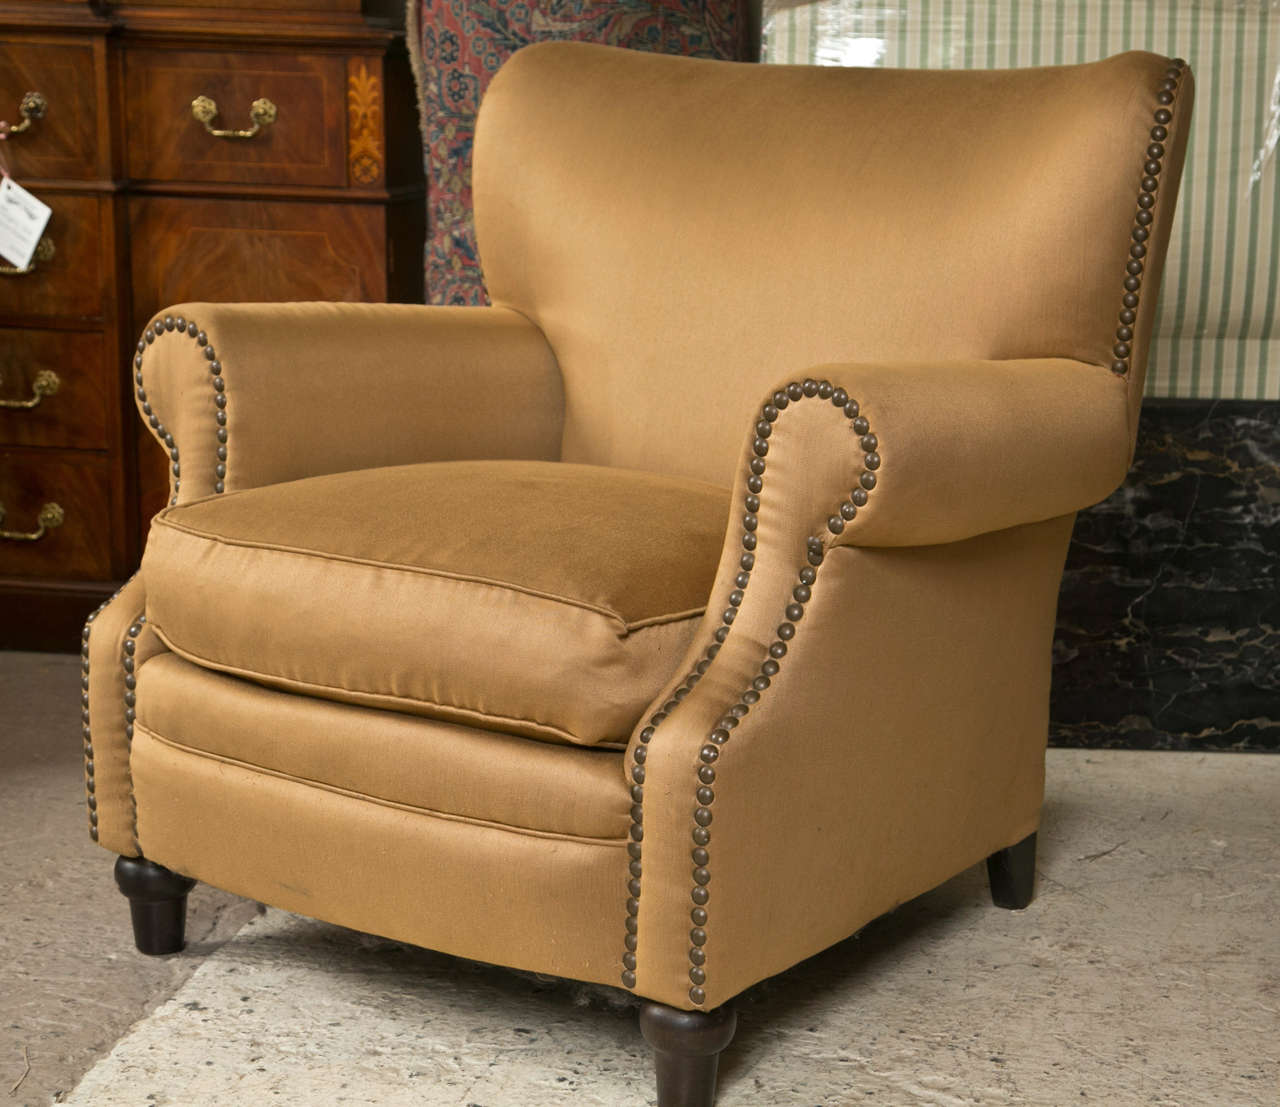 Overstuffed Wingback Chair Pair Of Overstuffed Oversized Arm Lounge Chairs At 1stdibs